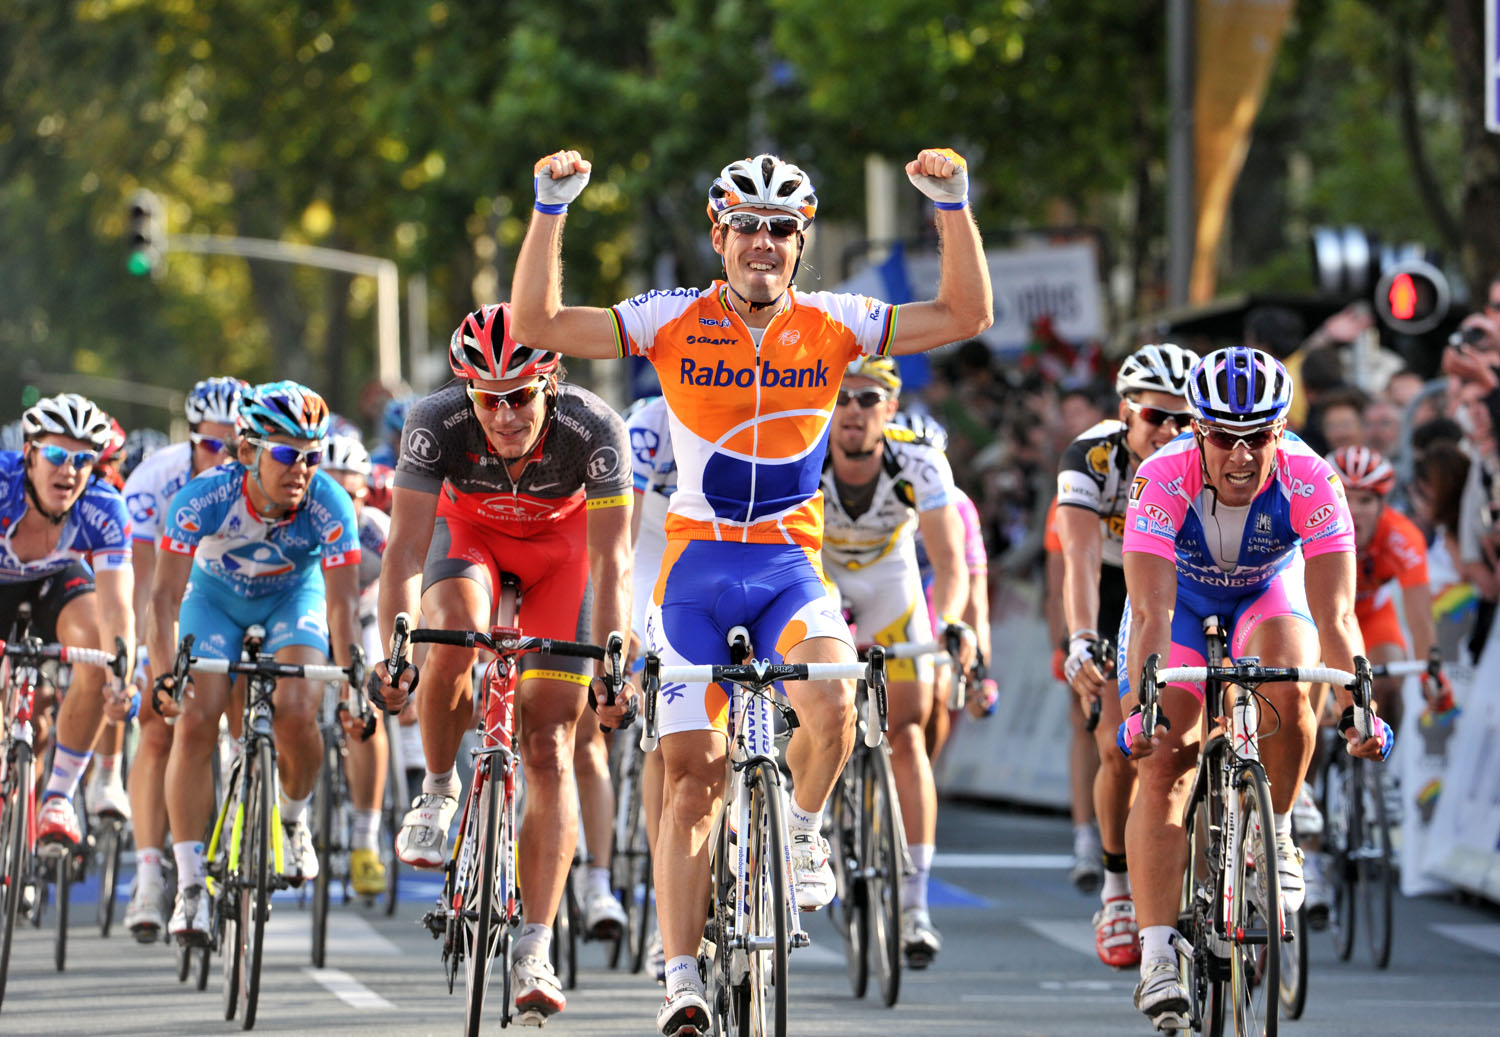 Oscar Freire wins Paris-Tours 2010